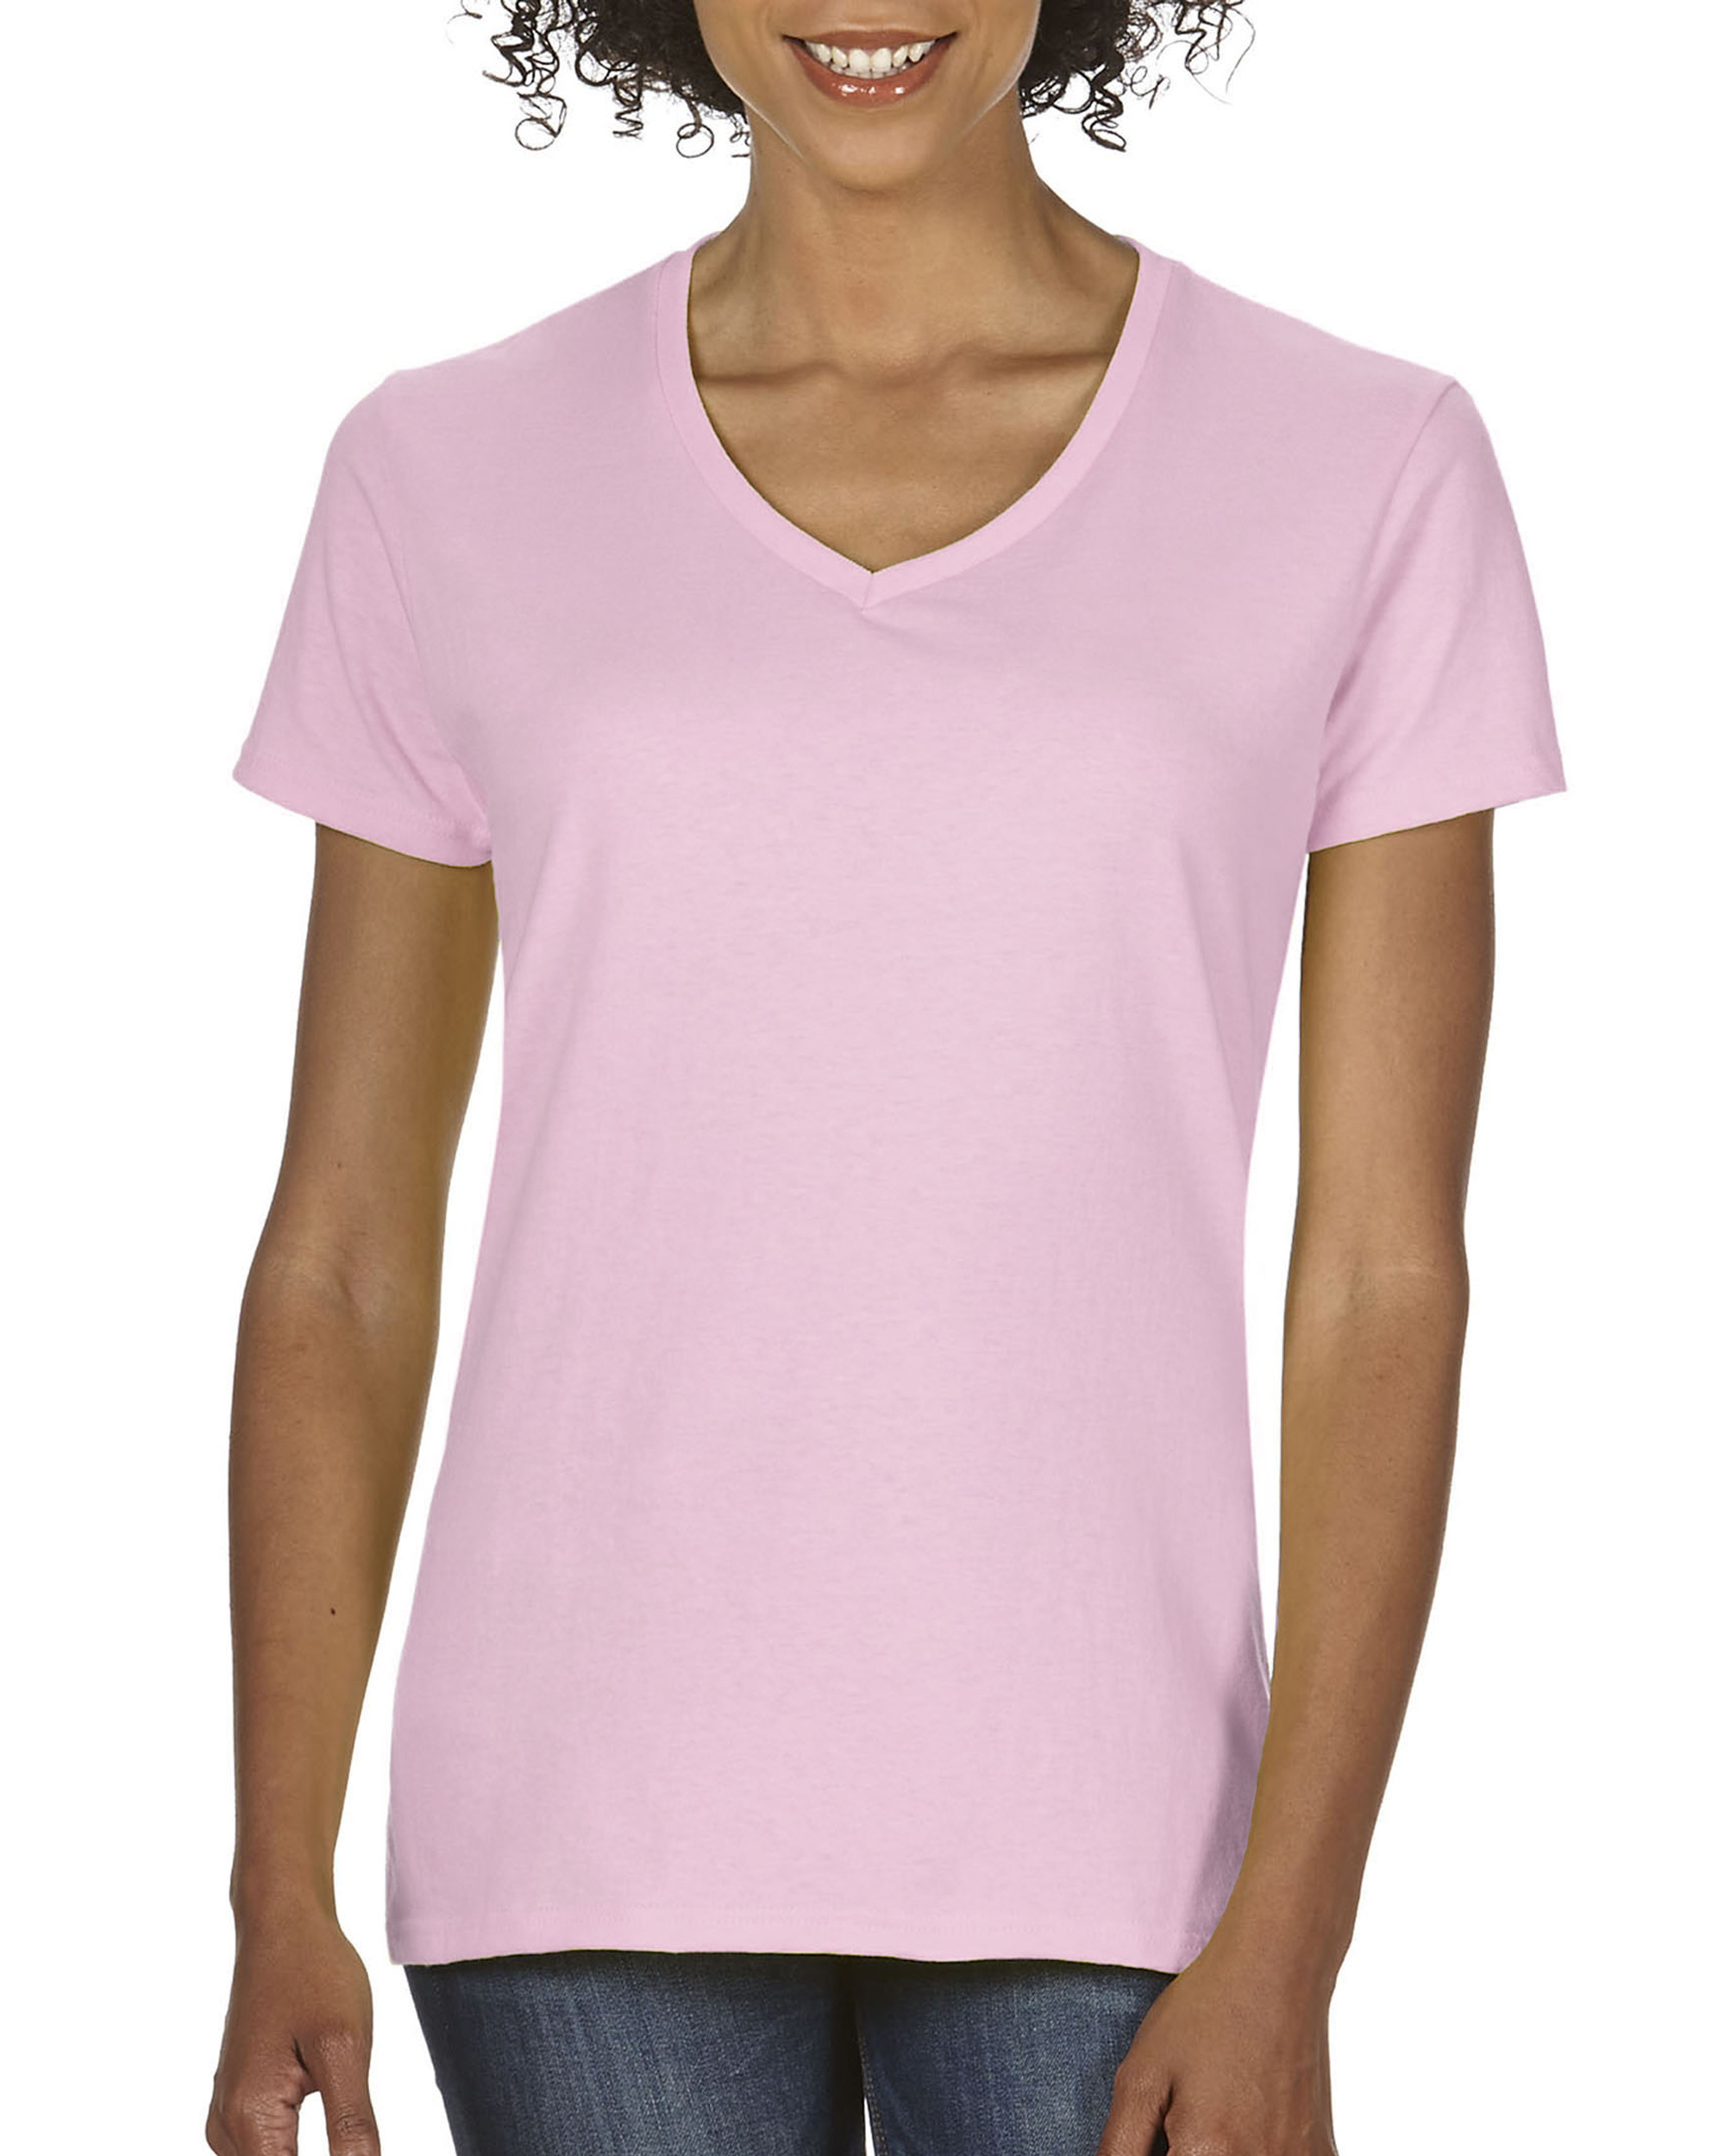 ComCol T-shirt Midweight V-neck SS for her